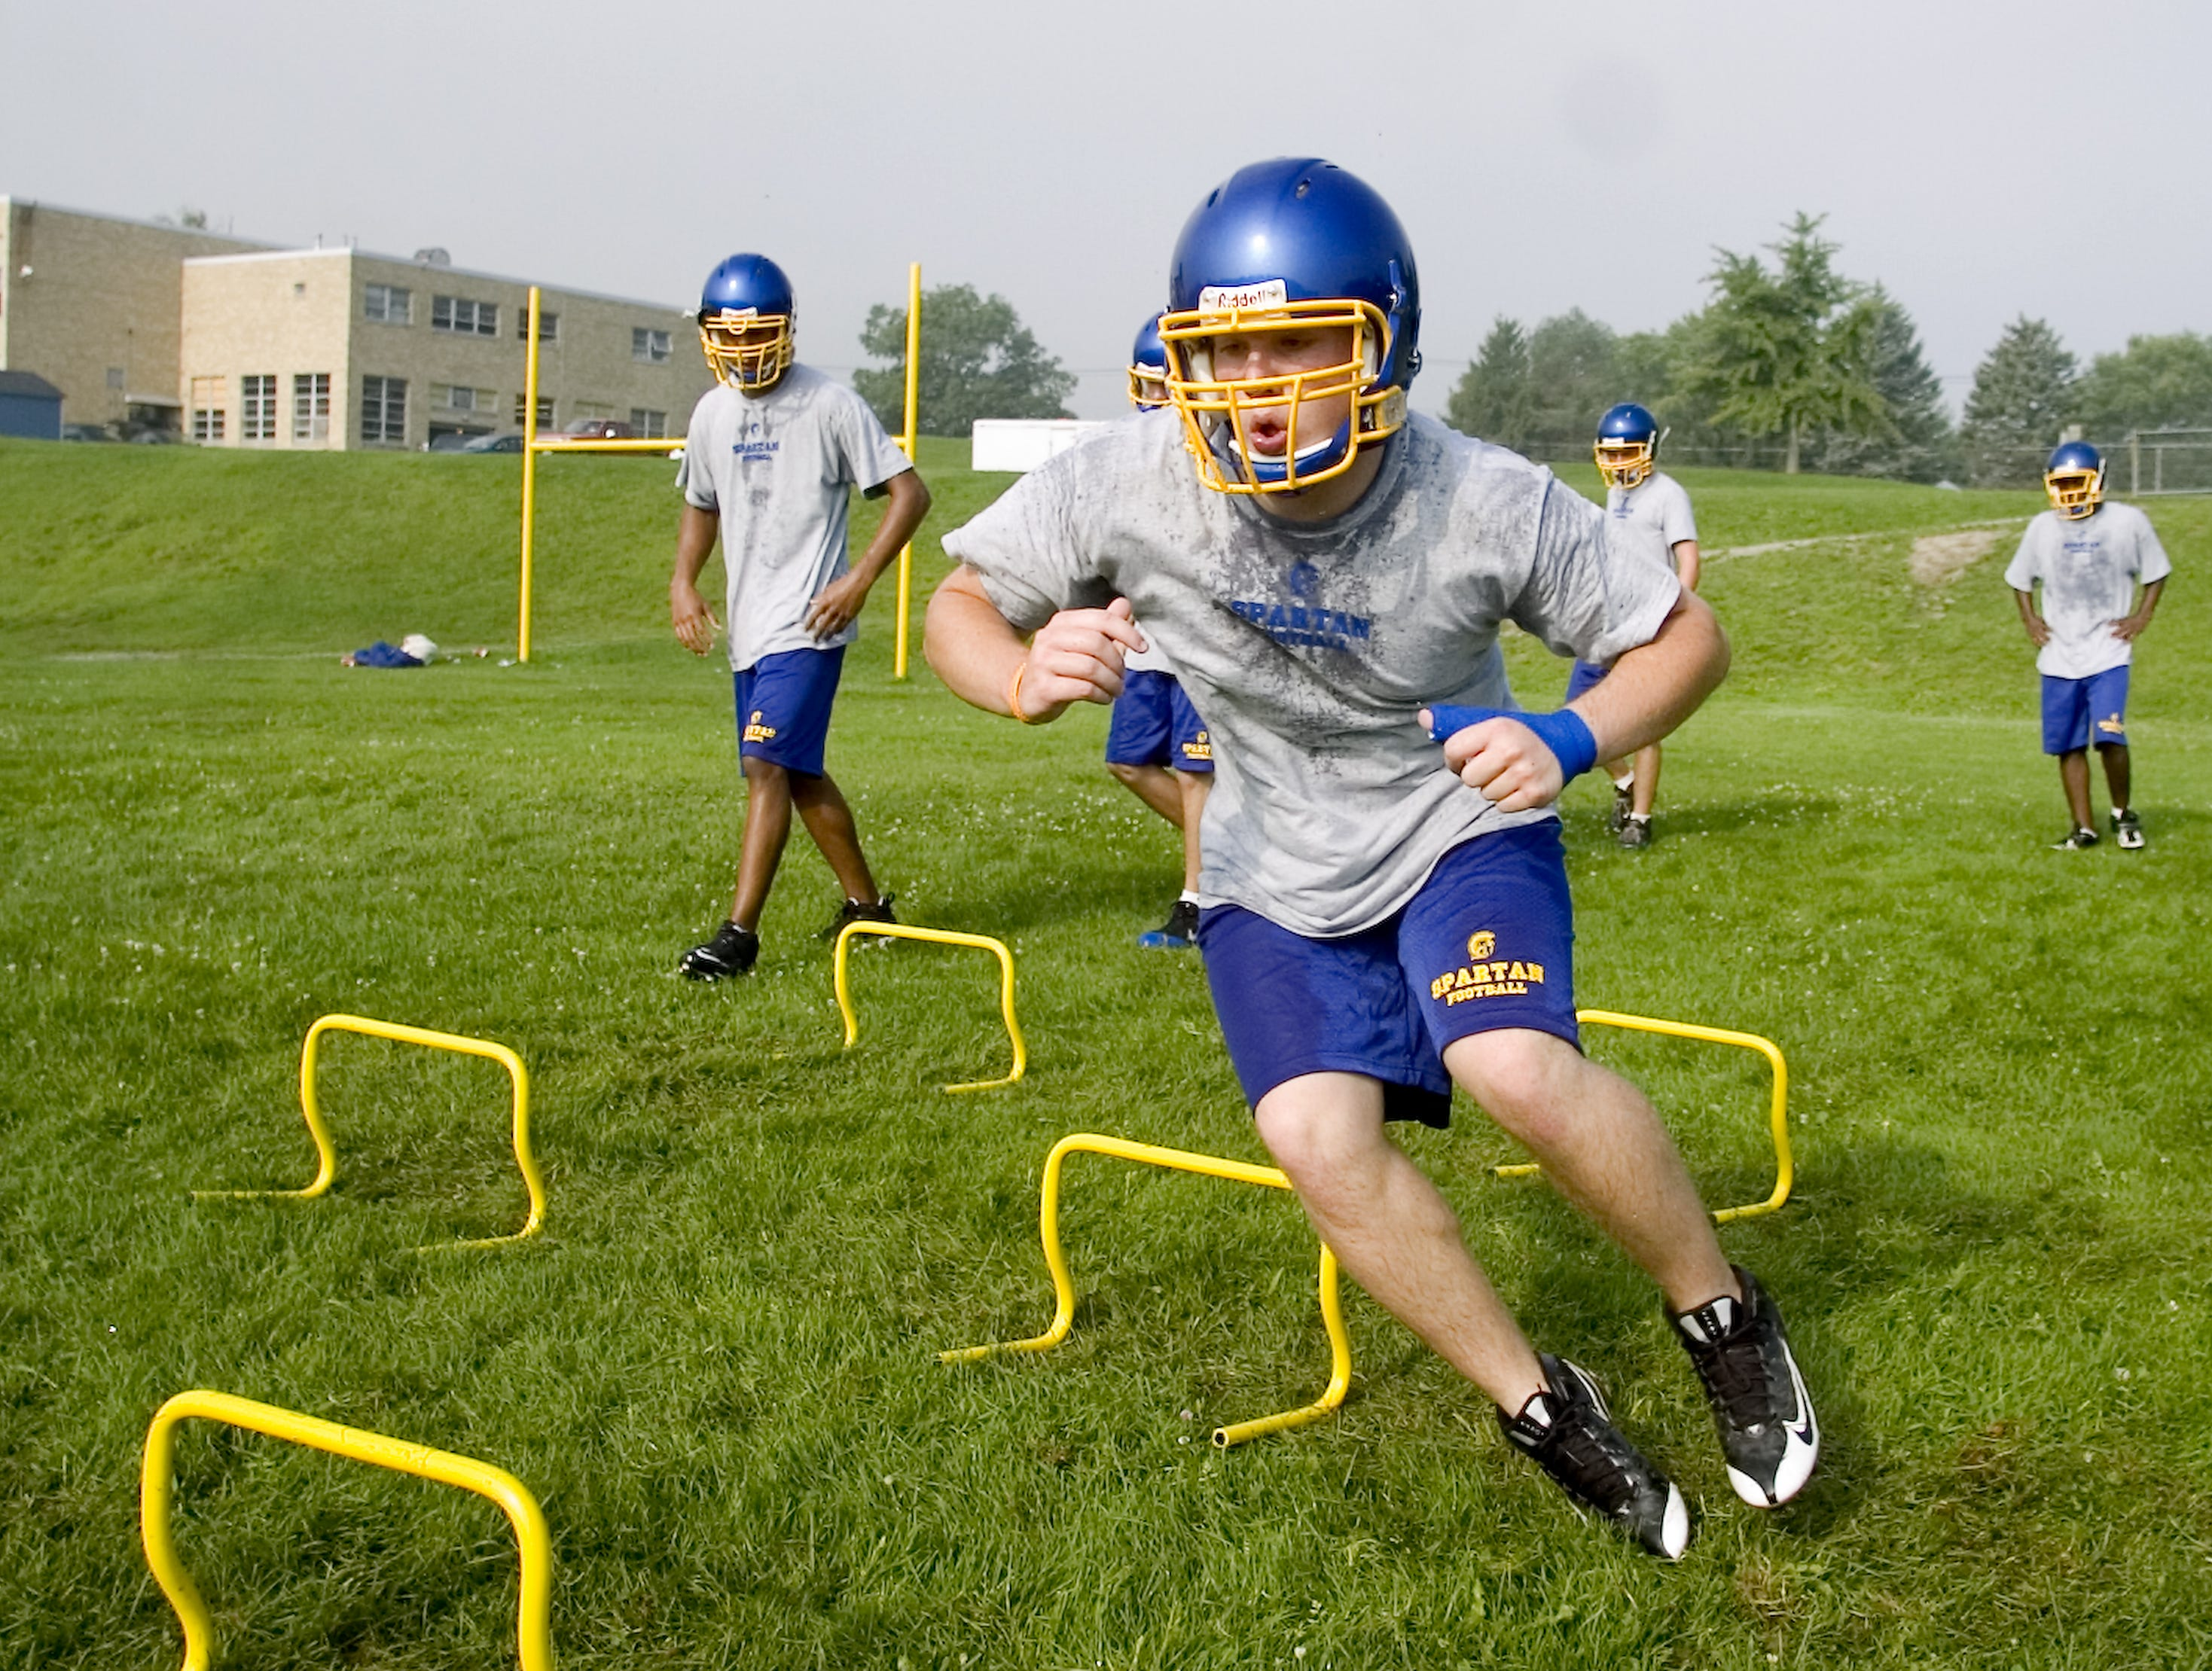 Senior Nate Reynolds runs a sprint drill in 2009 during the first day of football practice at Maine-Endwell High School in Endwell.